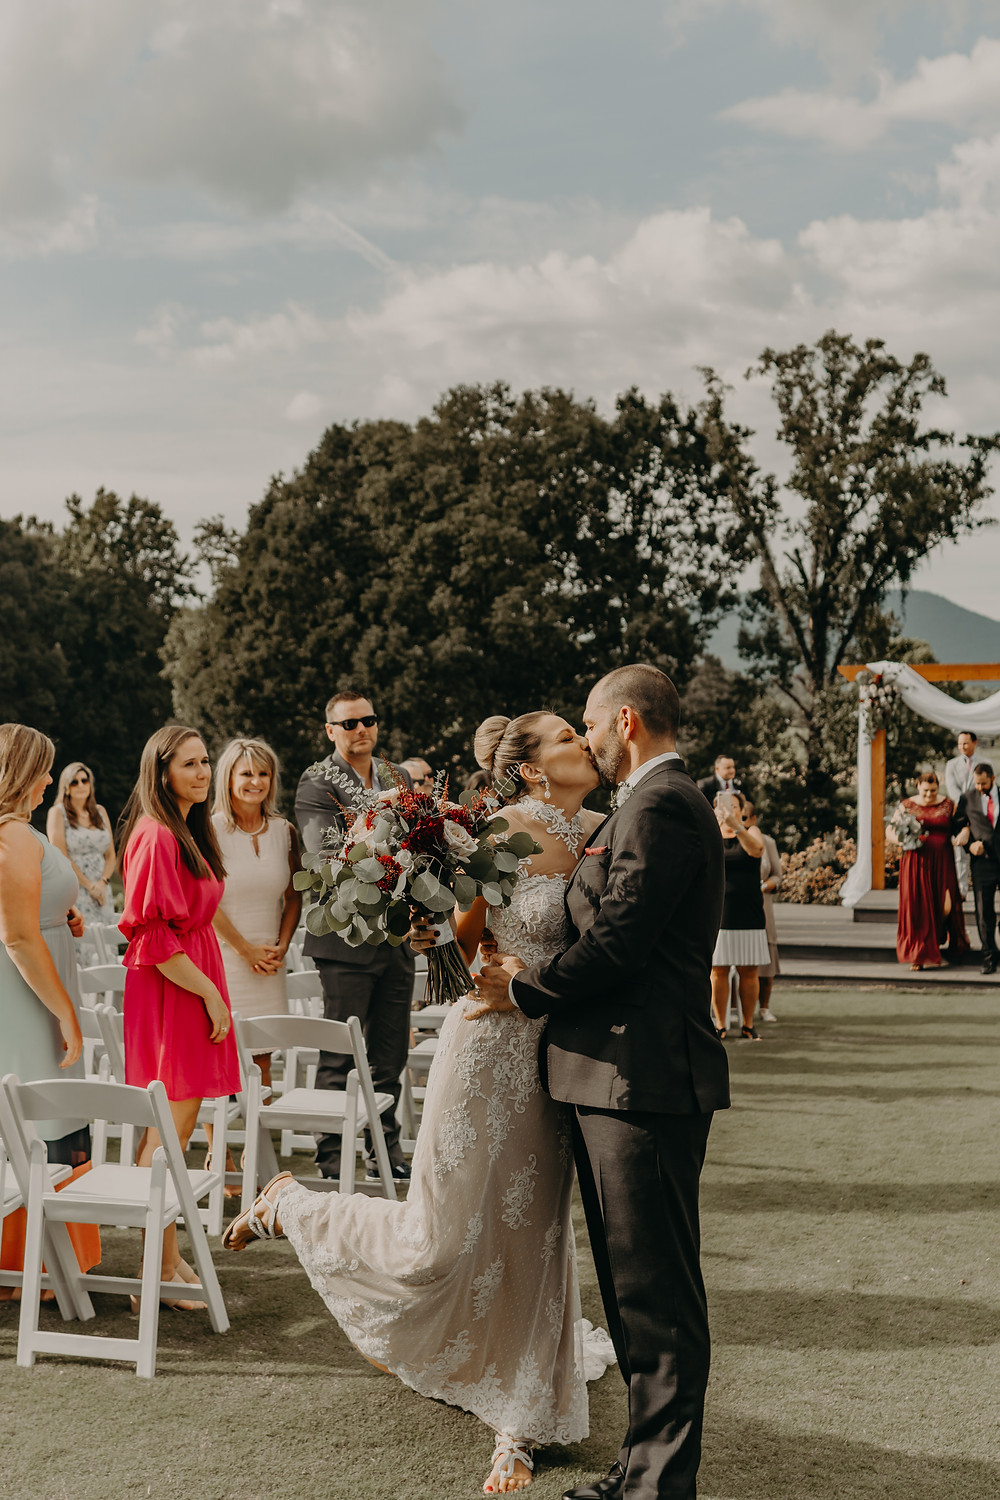 wedding ceremony in a vineyard. Couple leaving the ceremony